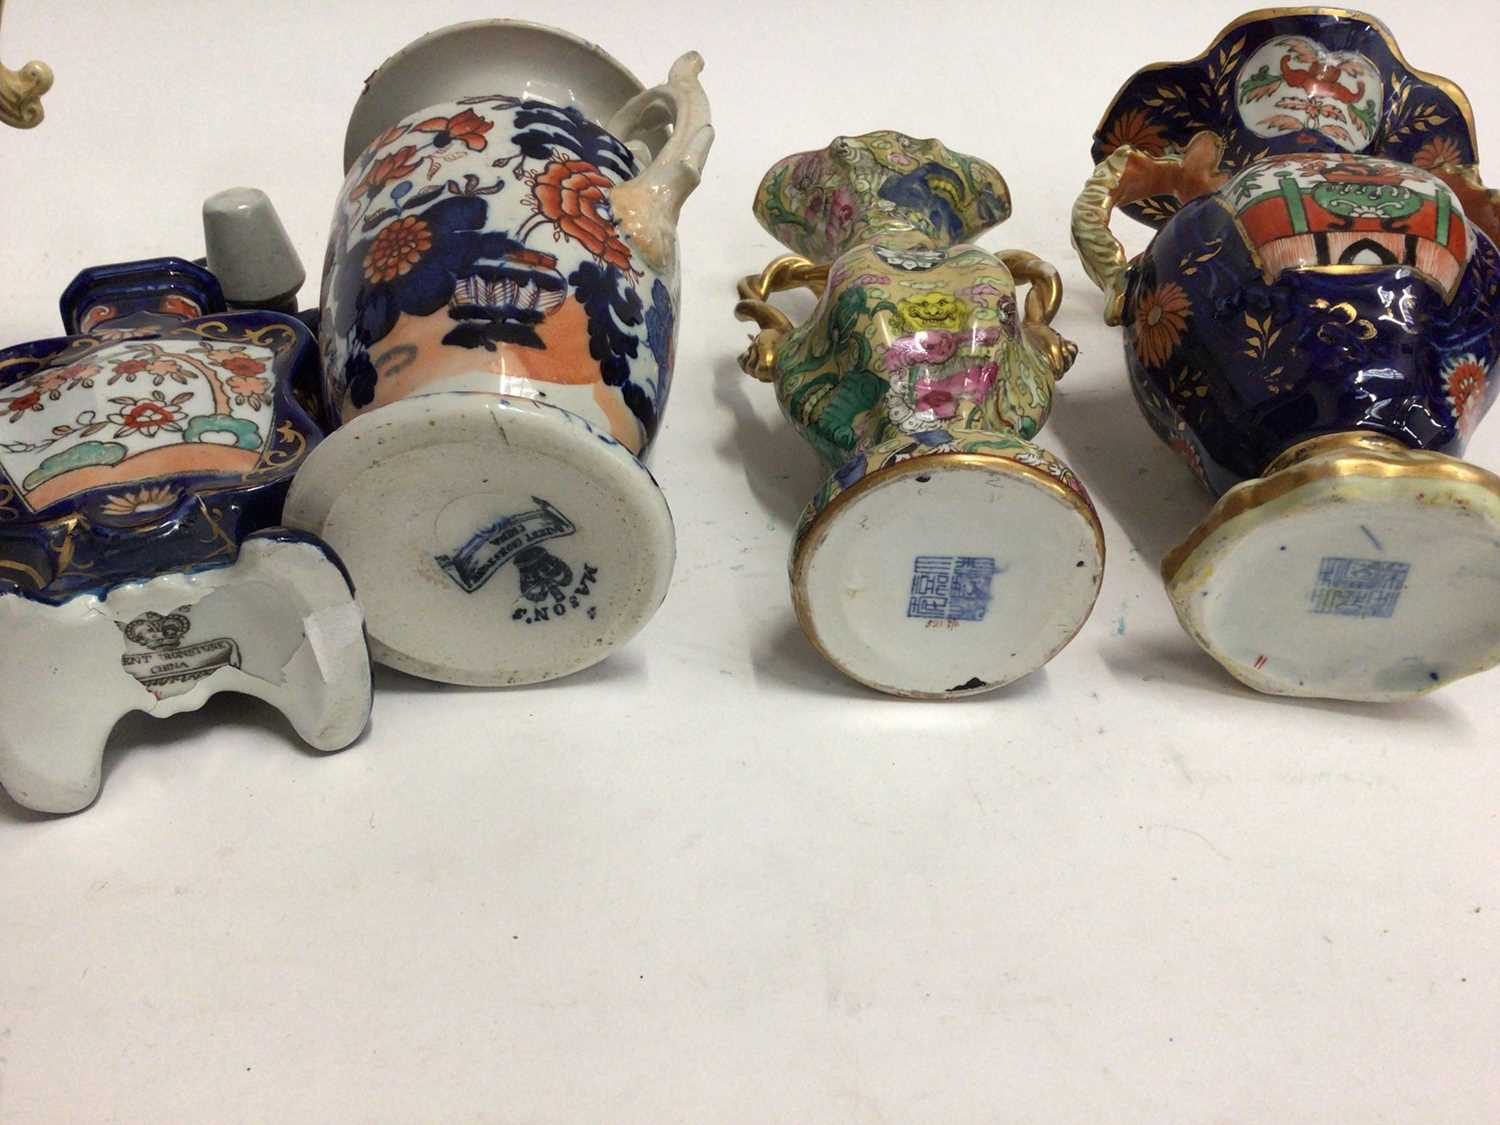 19th century Masons and Masons-style pottery, including four vases and a scent bottle, the largest v - Image 5 of 5